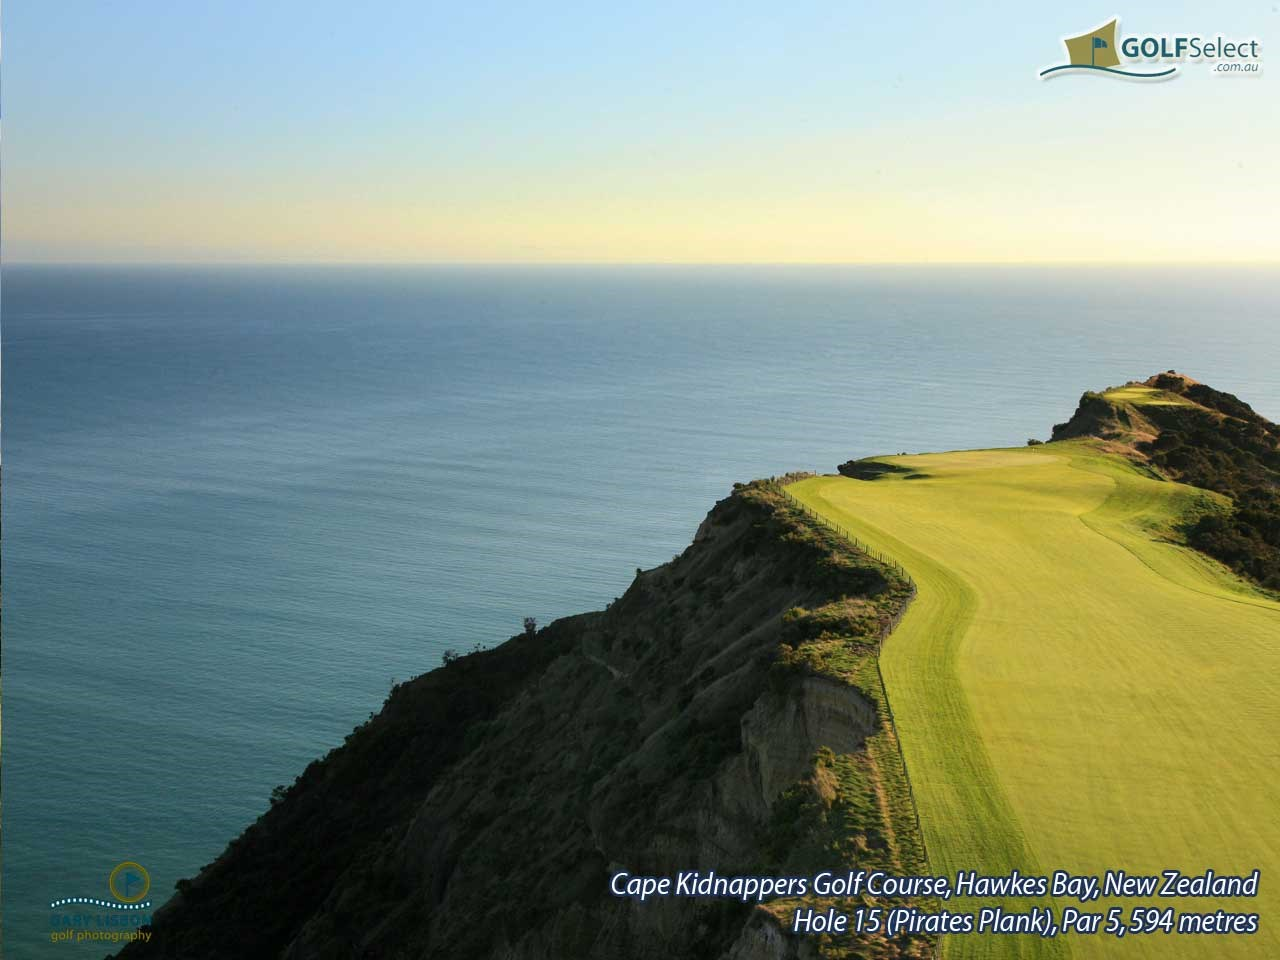 Cape Kidnappers Golf Course Hole 15 (Pirate Plank), Par 5, 594 metres